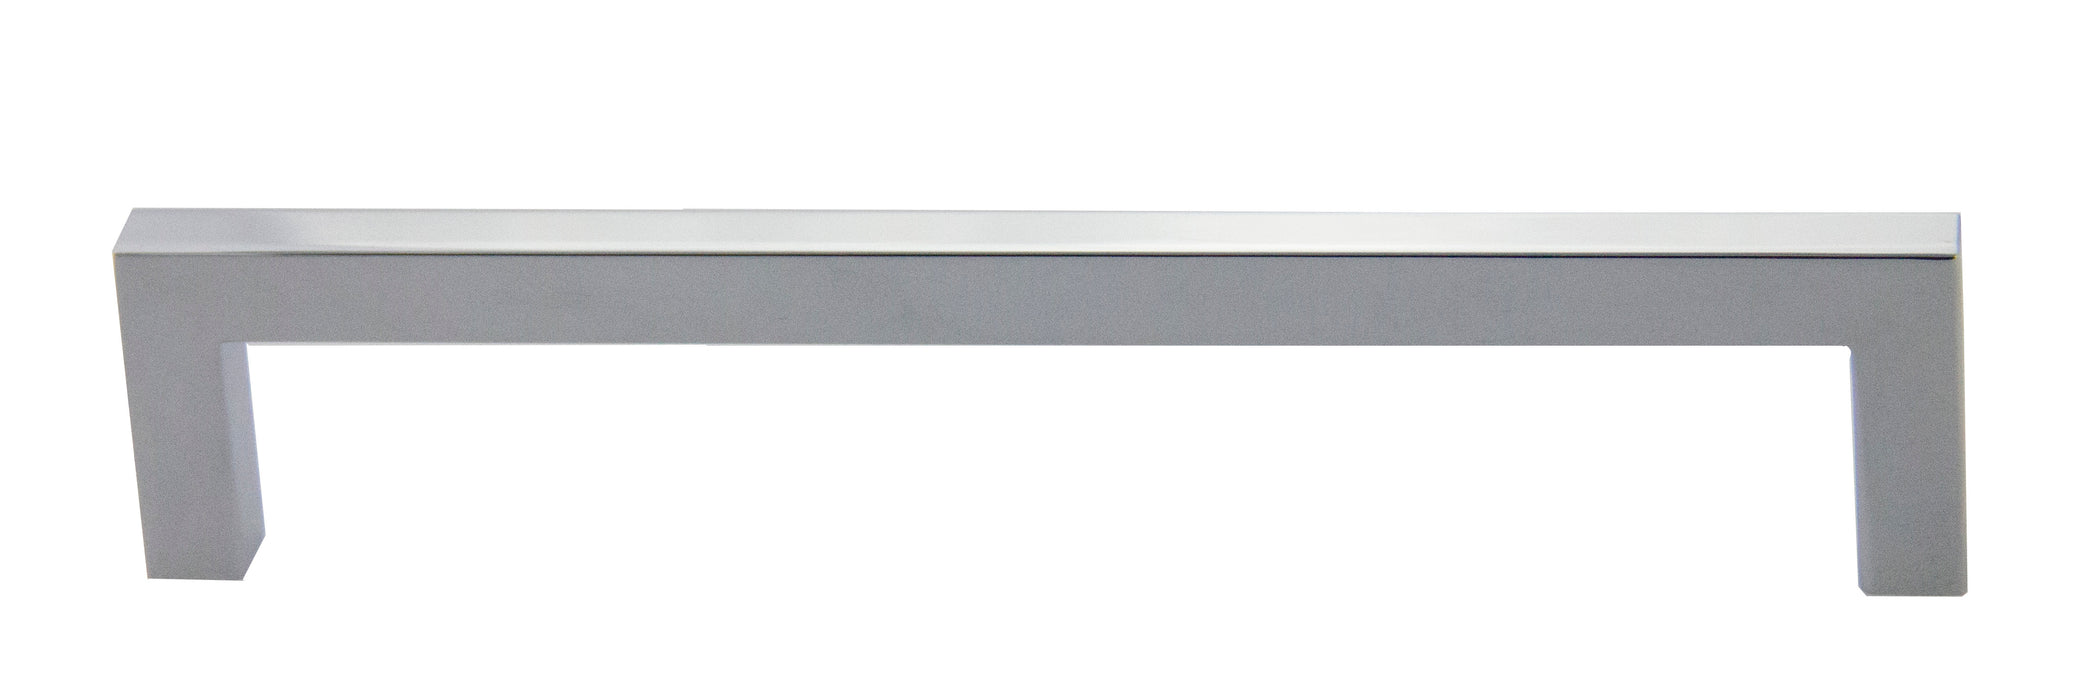 "Andrew Claire Collection 6-3/4"" Modern Square Pull - Polished Chrome"